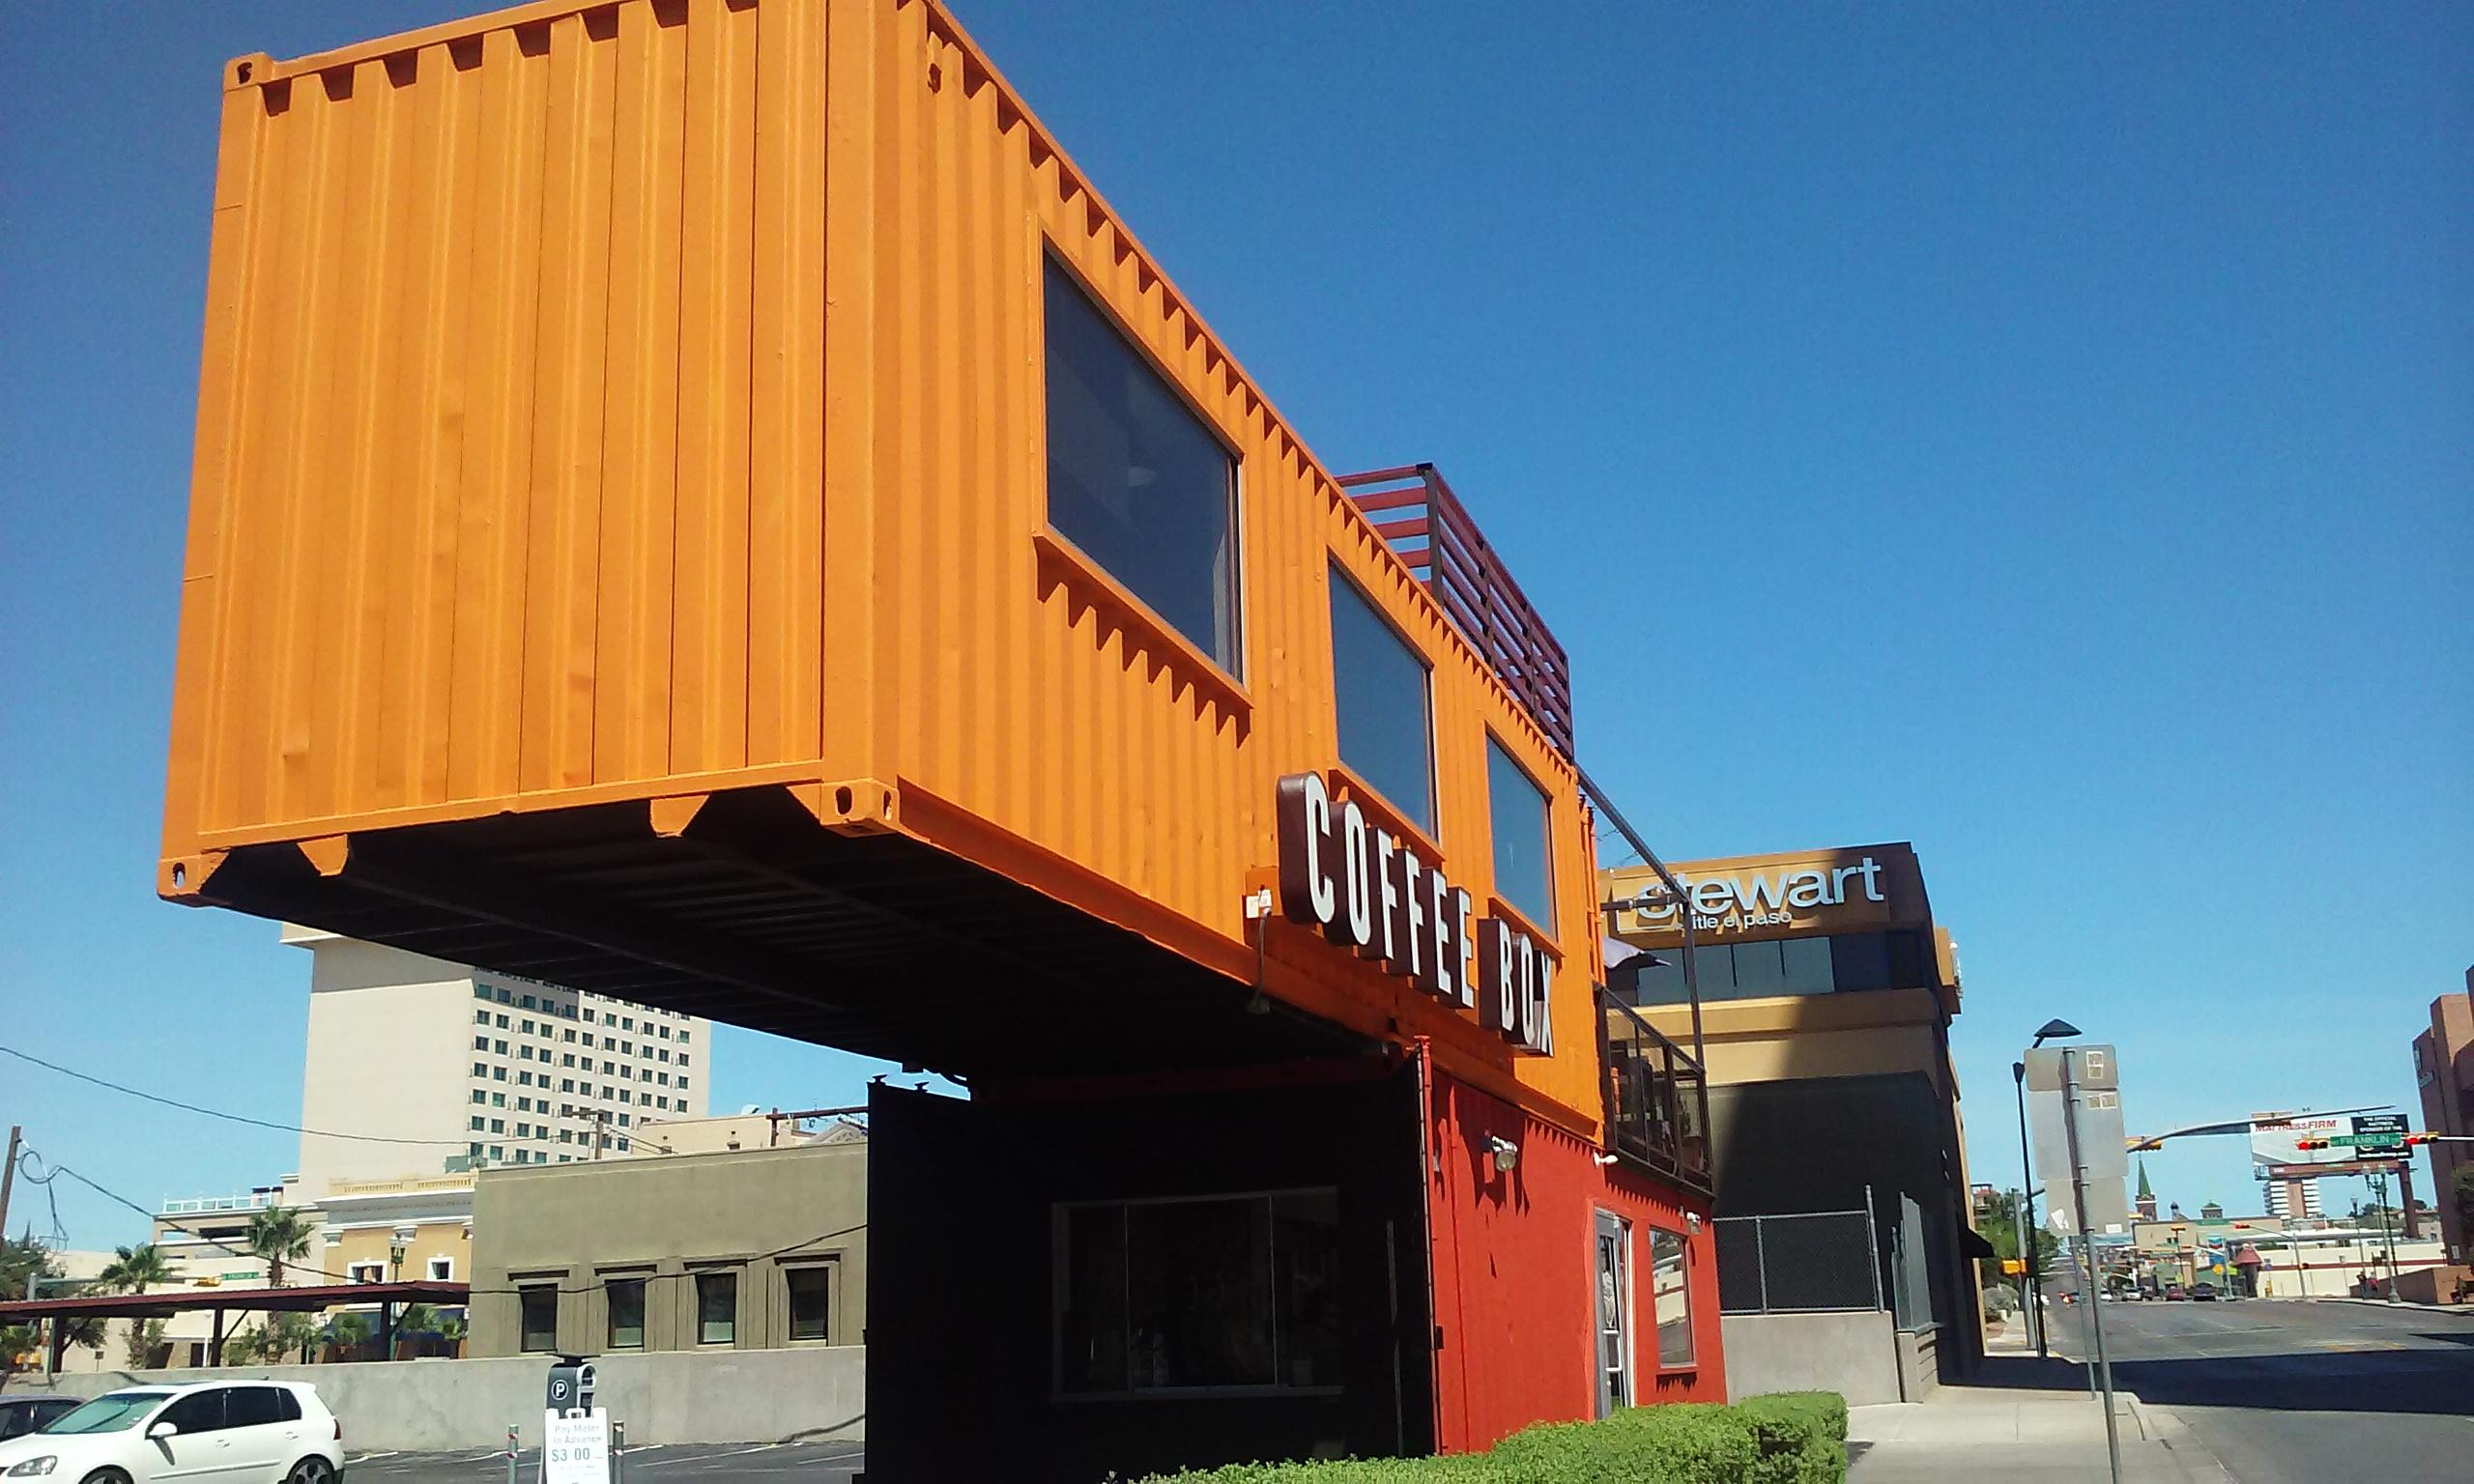 Coffee Box in downtown El Paso. Free WiFi. Outdoor second floor patio. Paid parking. Excel